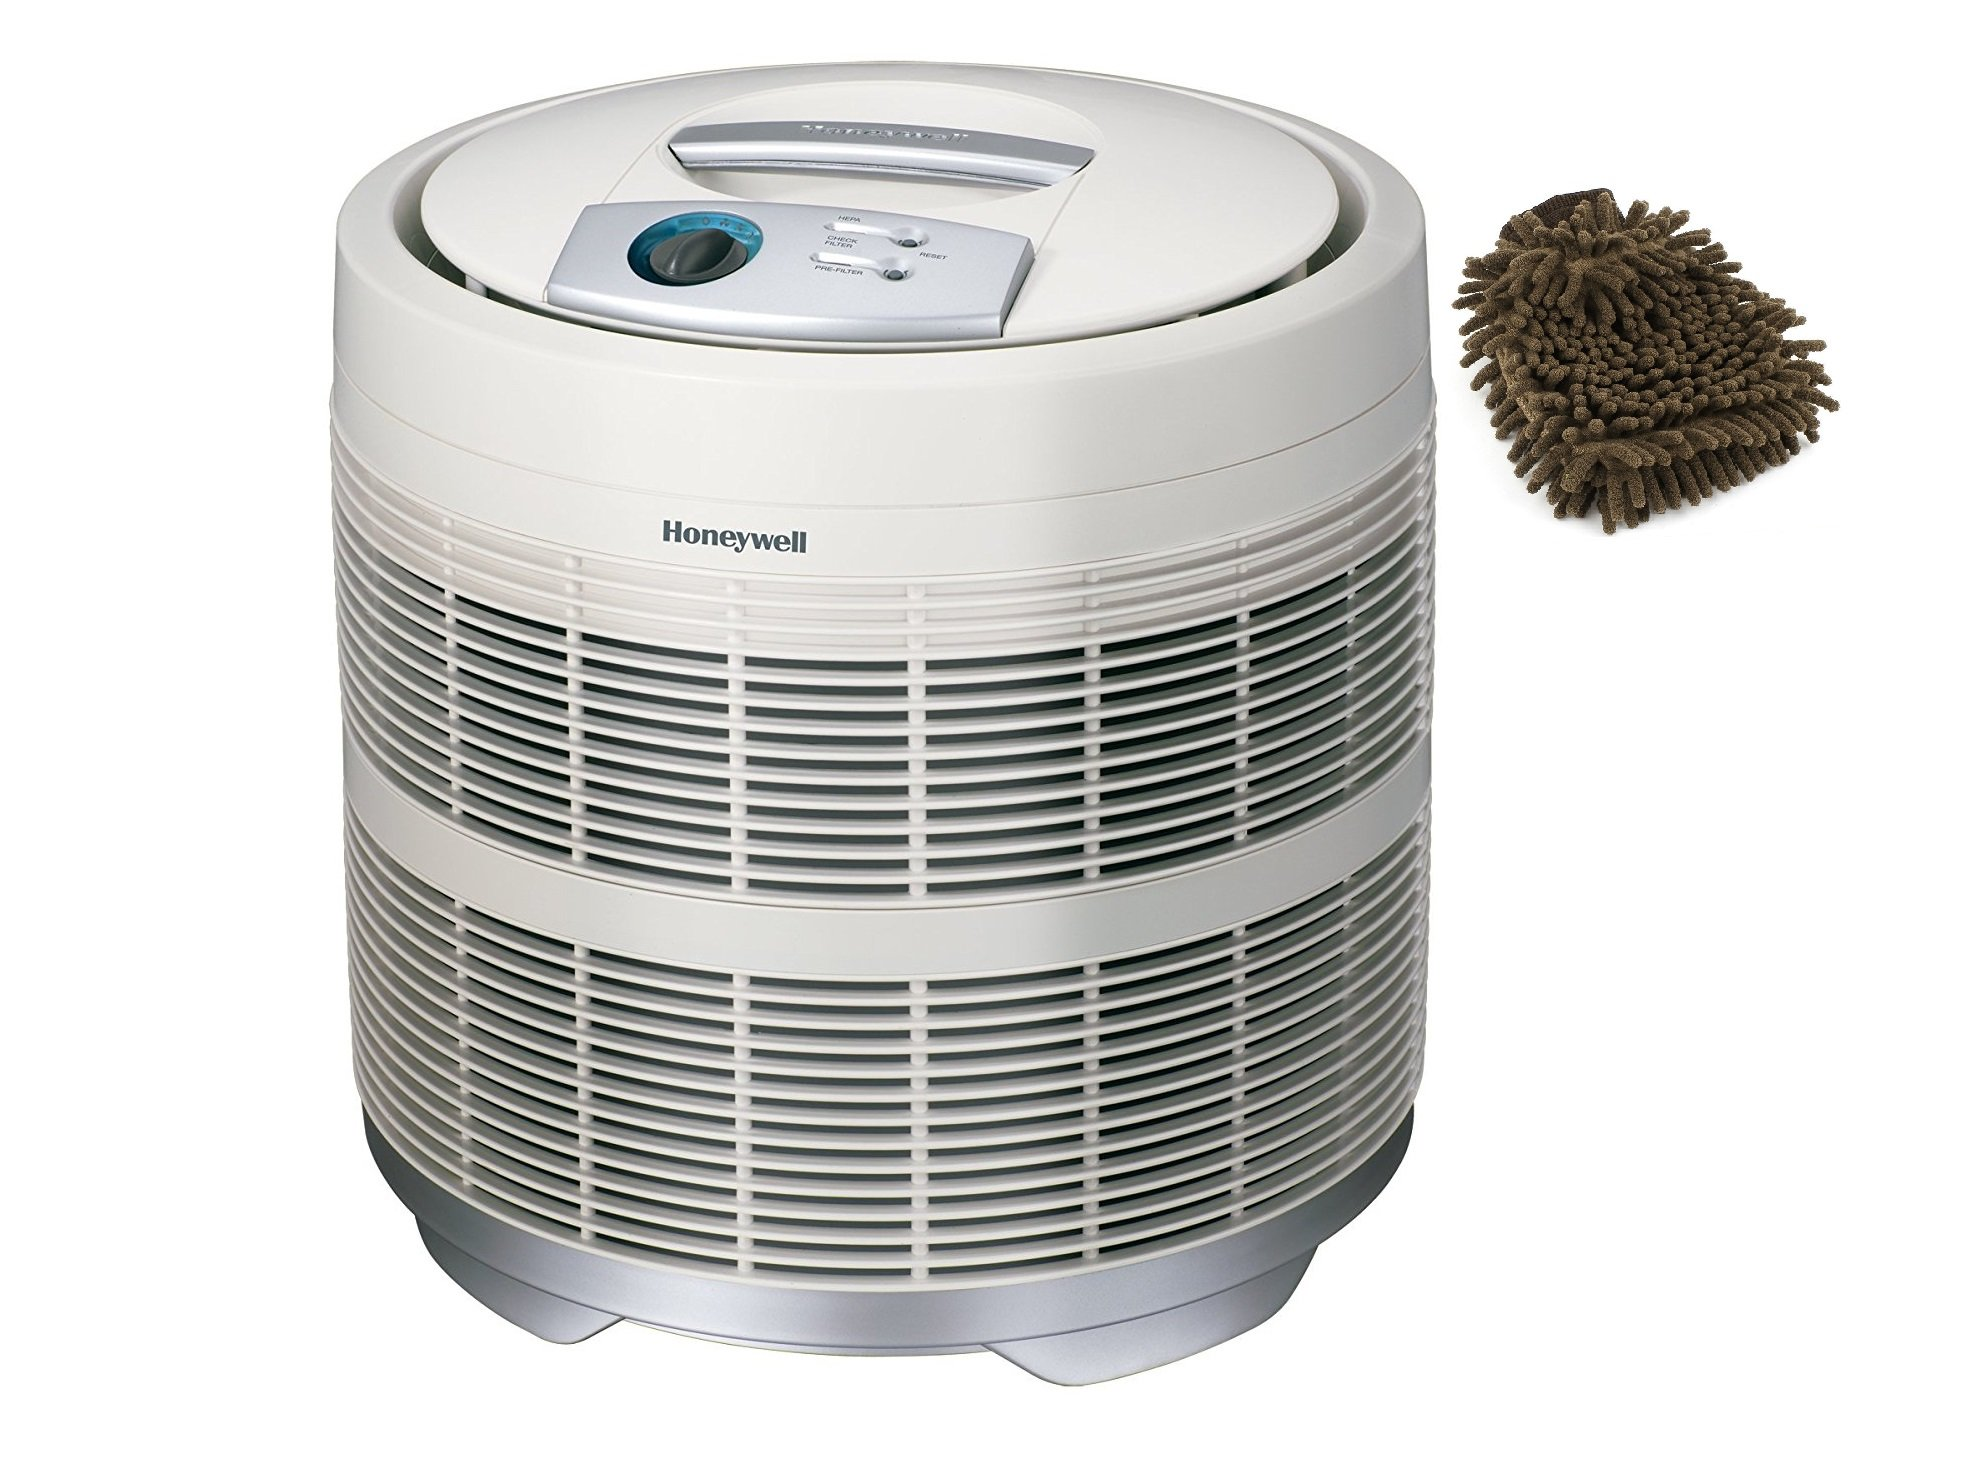 50250-S Honeywell Air Purifier True HEPA Filter, Prefilter, 390 Sq. Ft (Complete Set) w/ Bonus: Premium Microfiber Cleaner Bundle